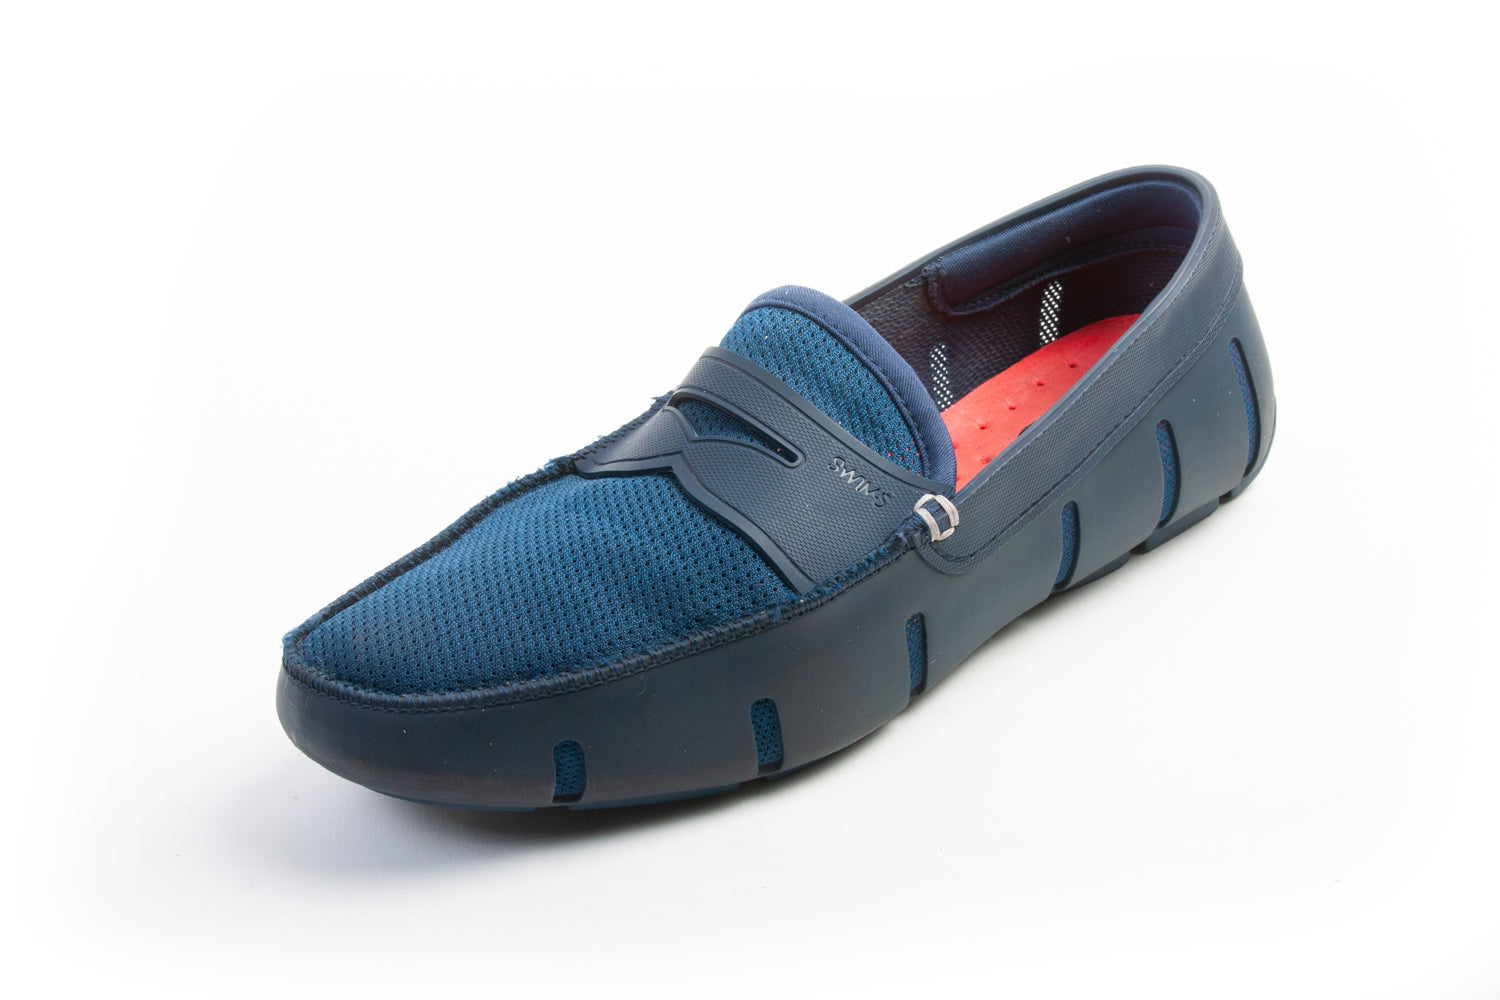 Swims Blue Penny Loafer for Luxmrkt.com Menswear Consignment Edmonton